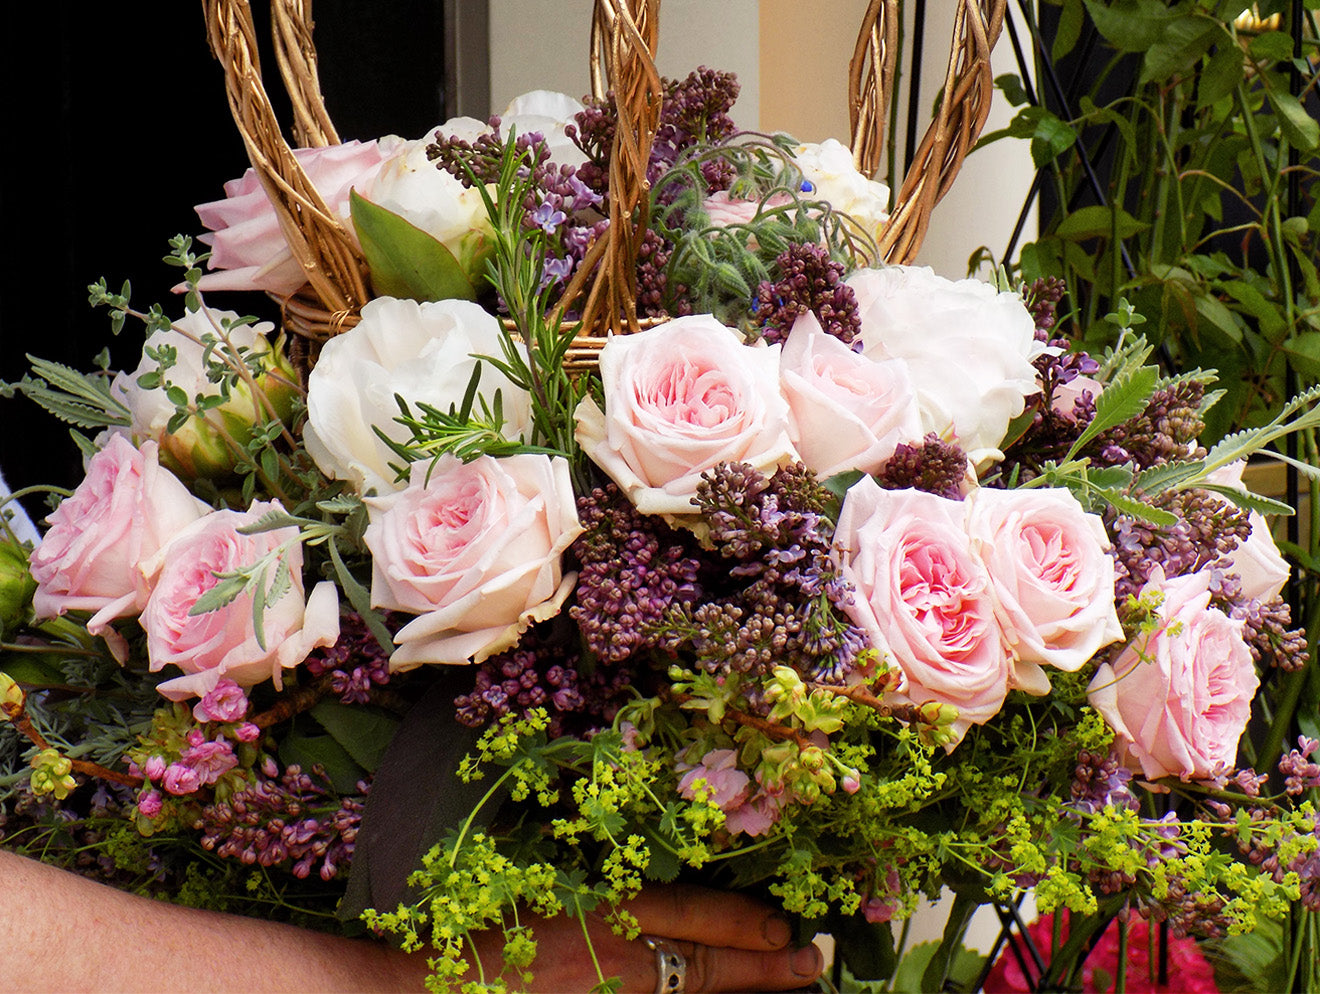 Luxurious floral display and demonstration